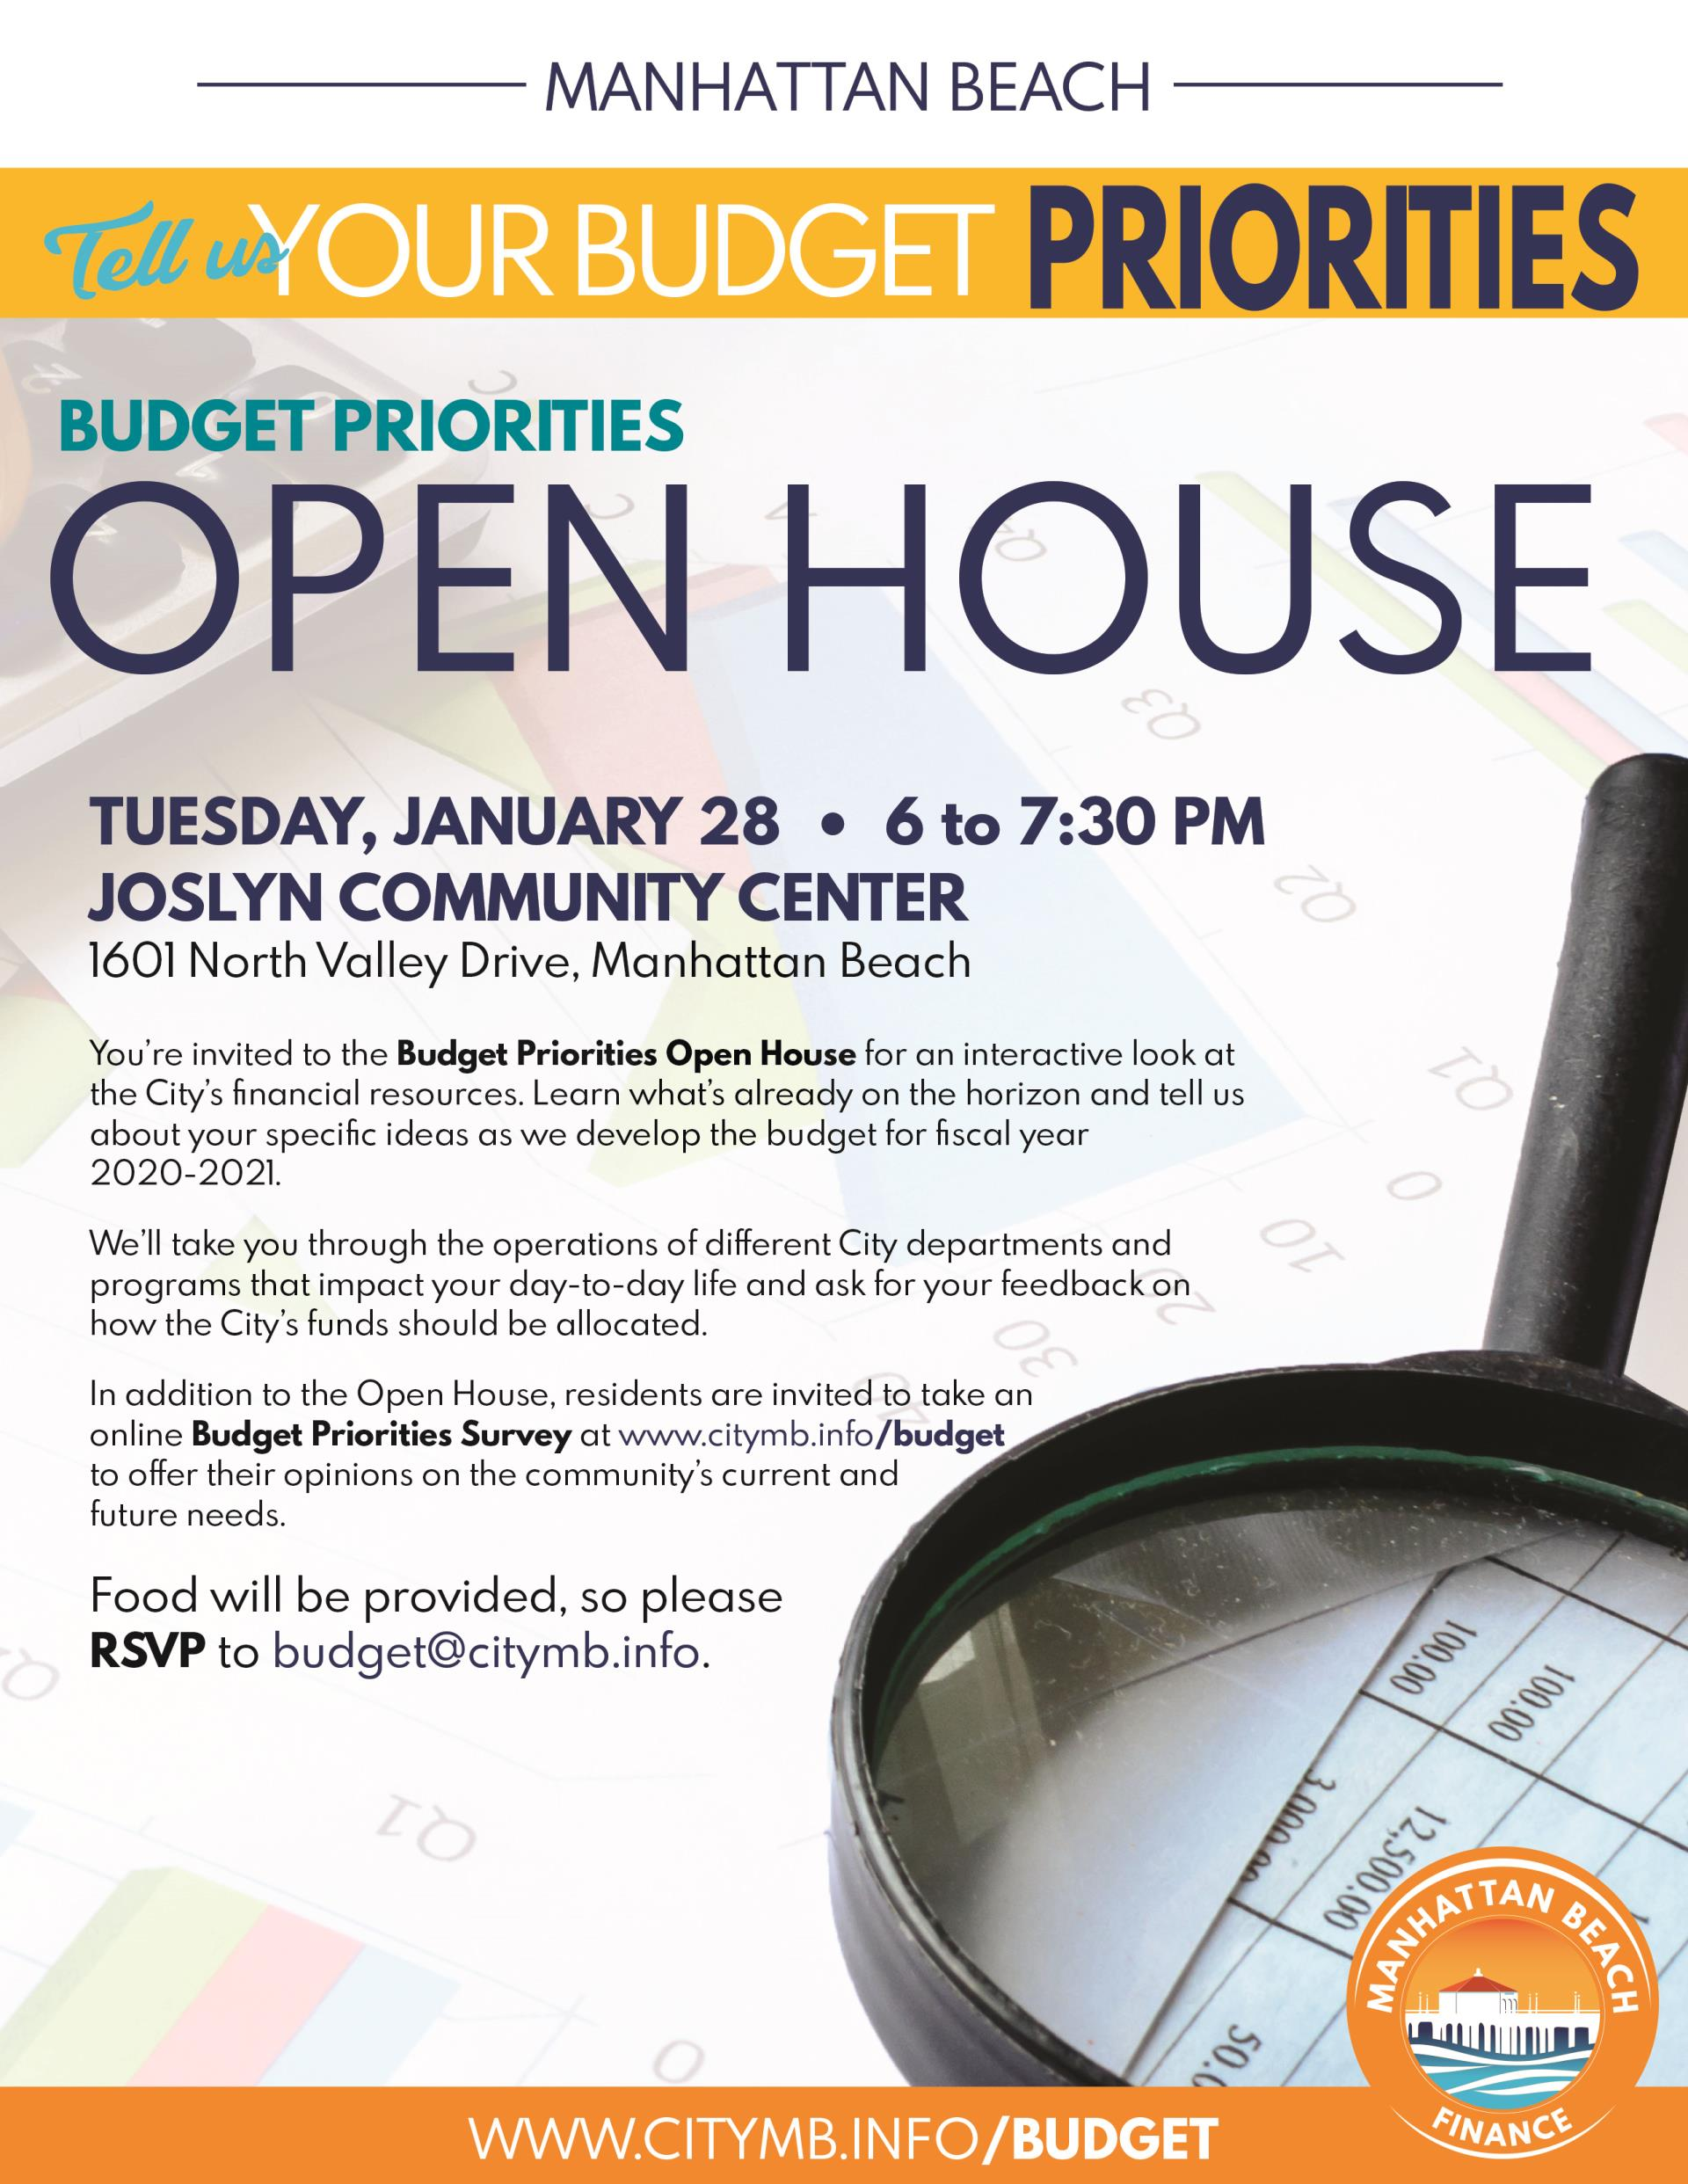 Budget Priorities Open House Flyer